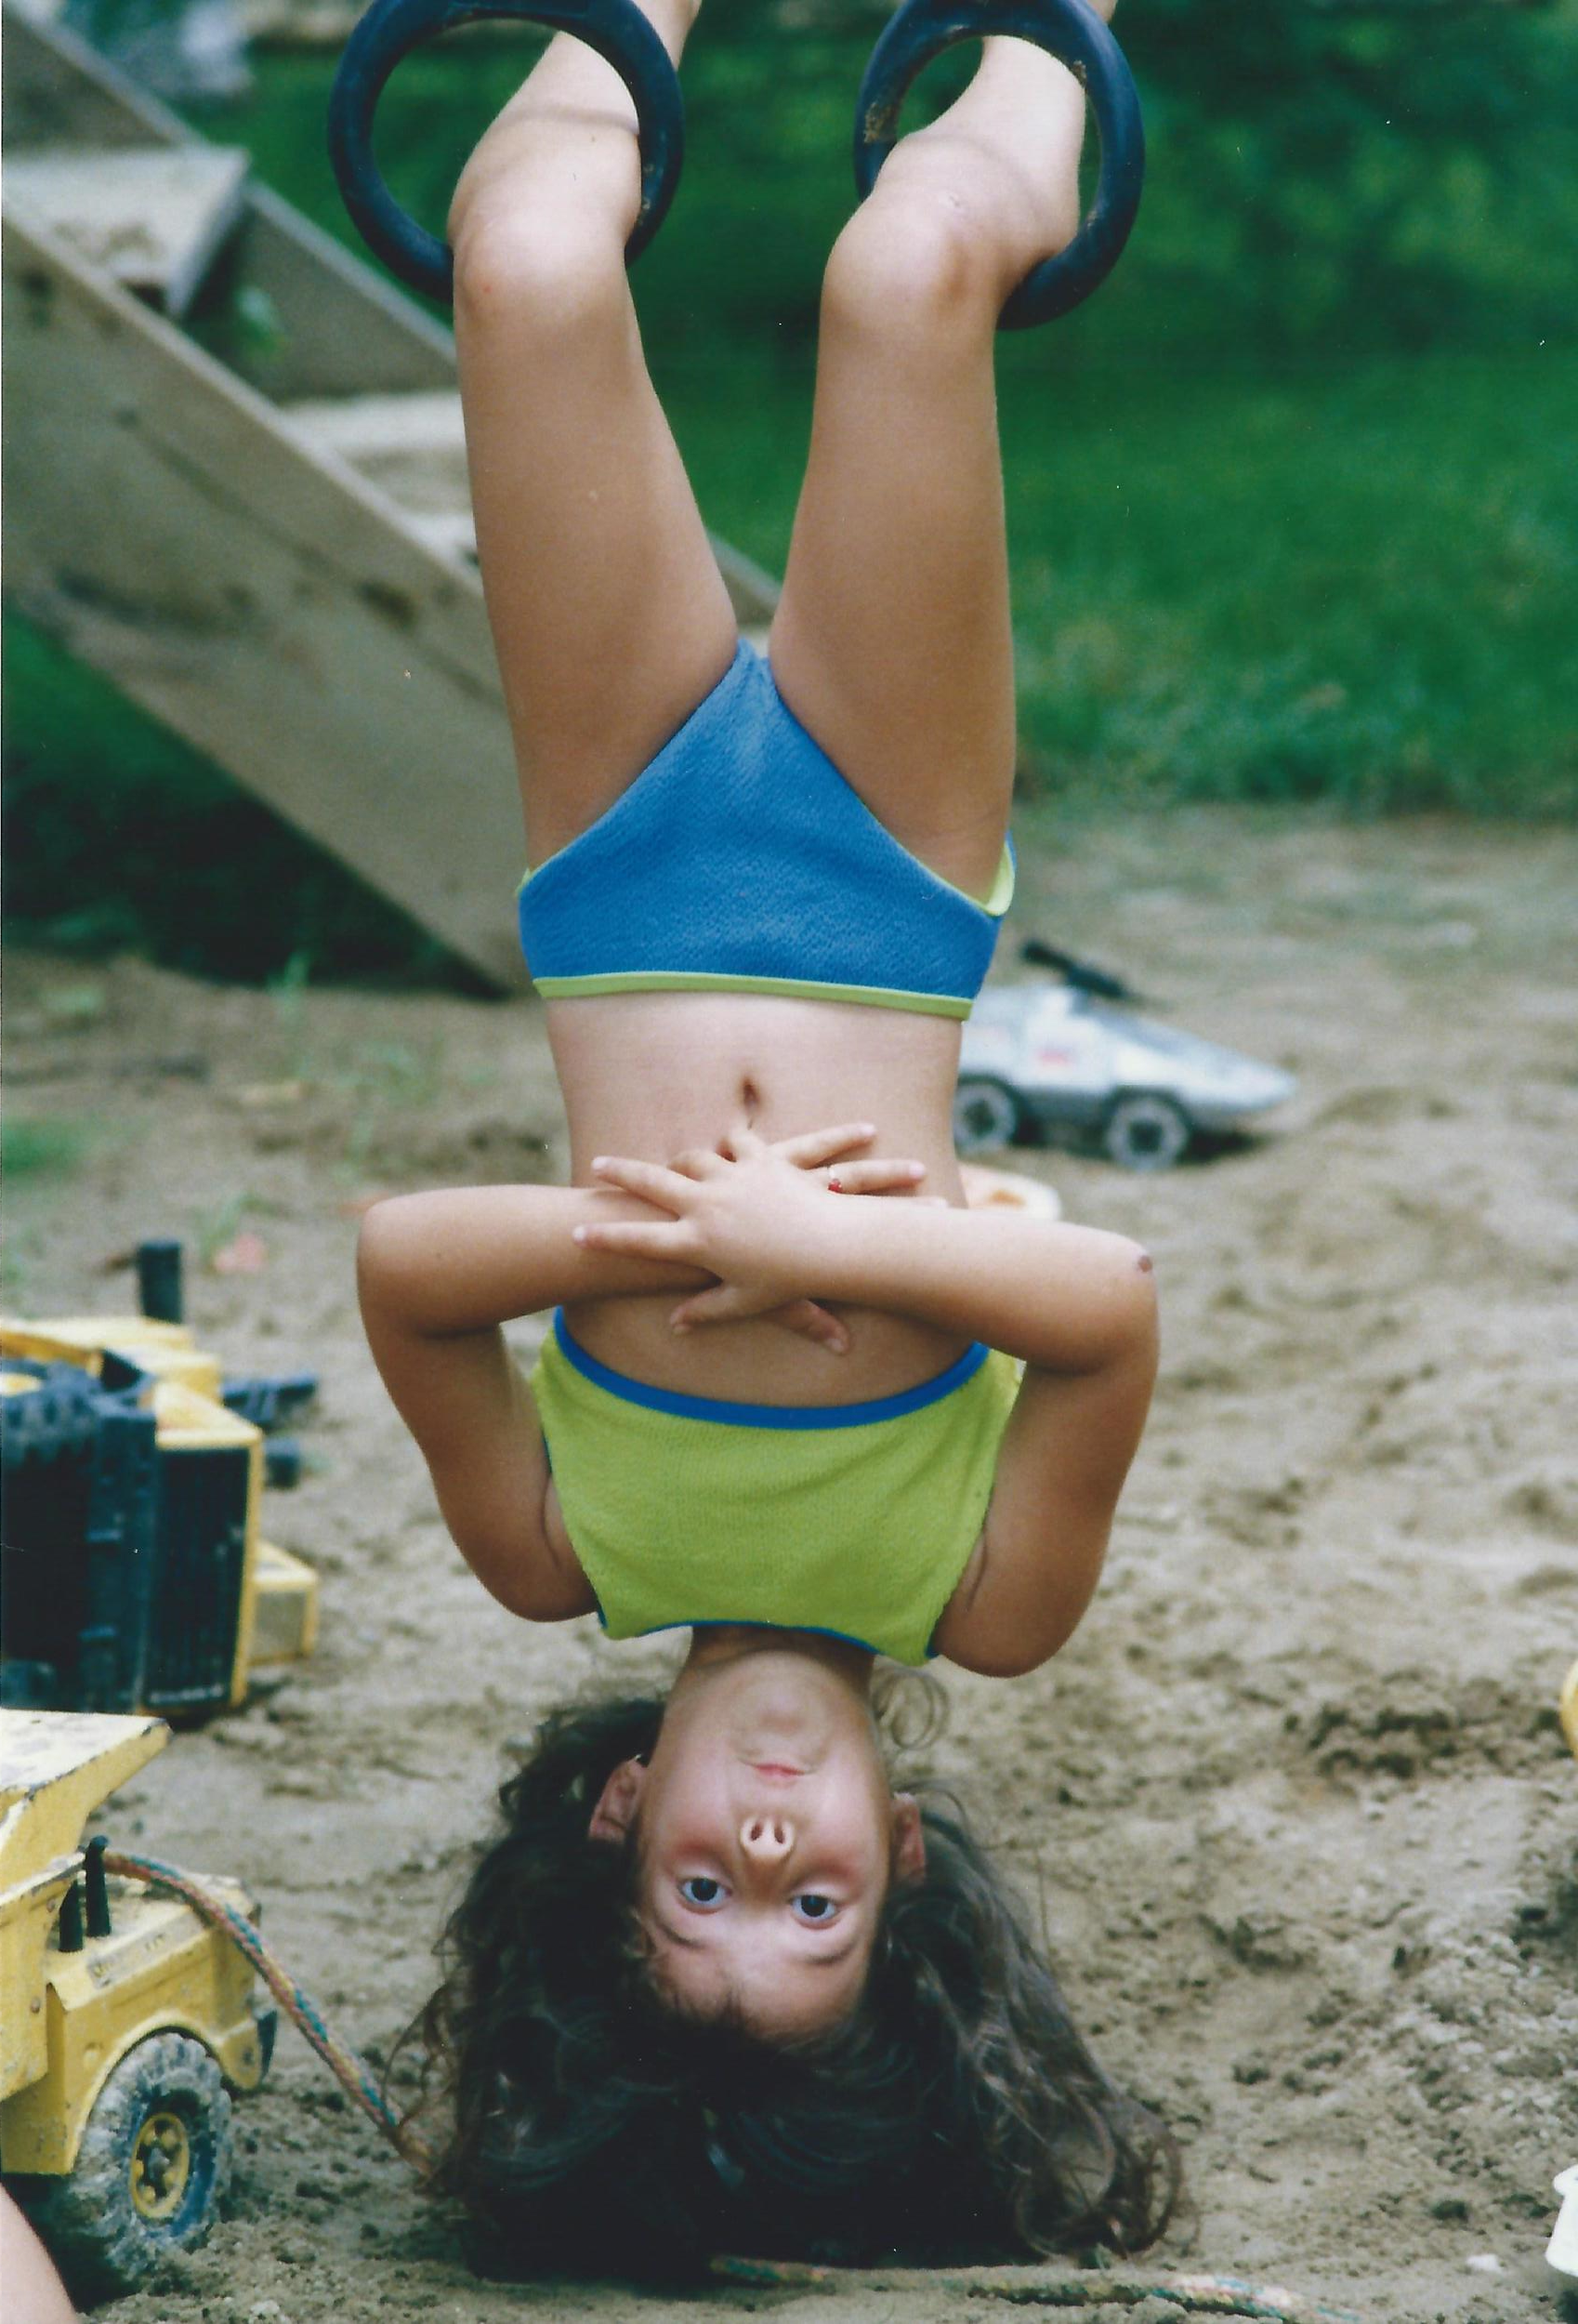 I think I still make that face when I'm upside down